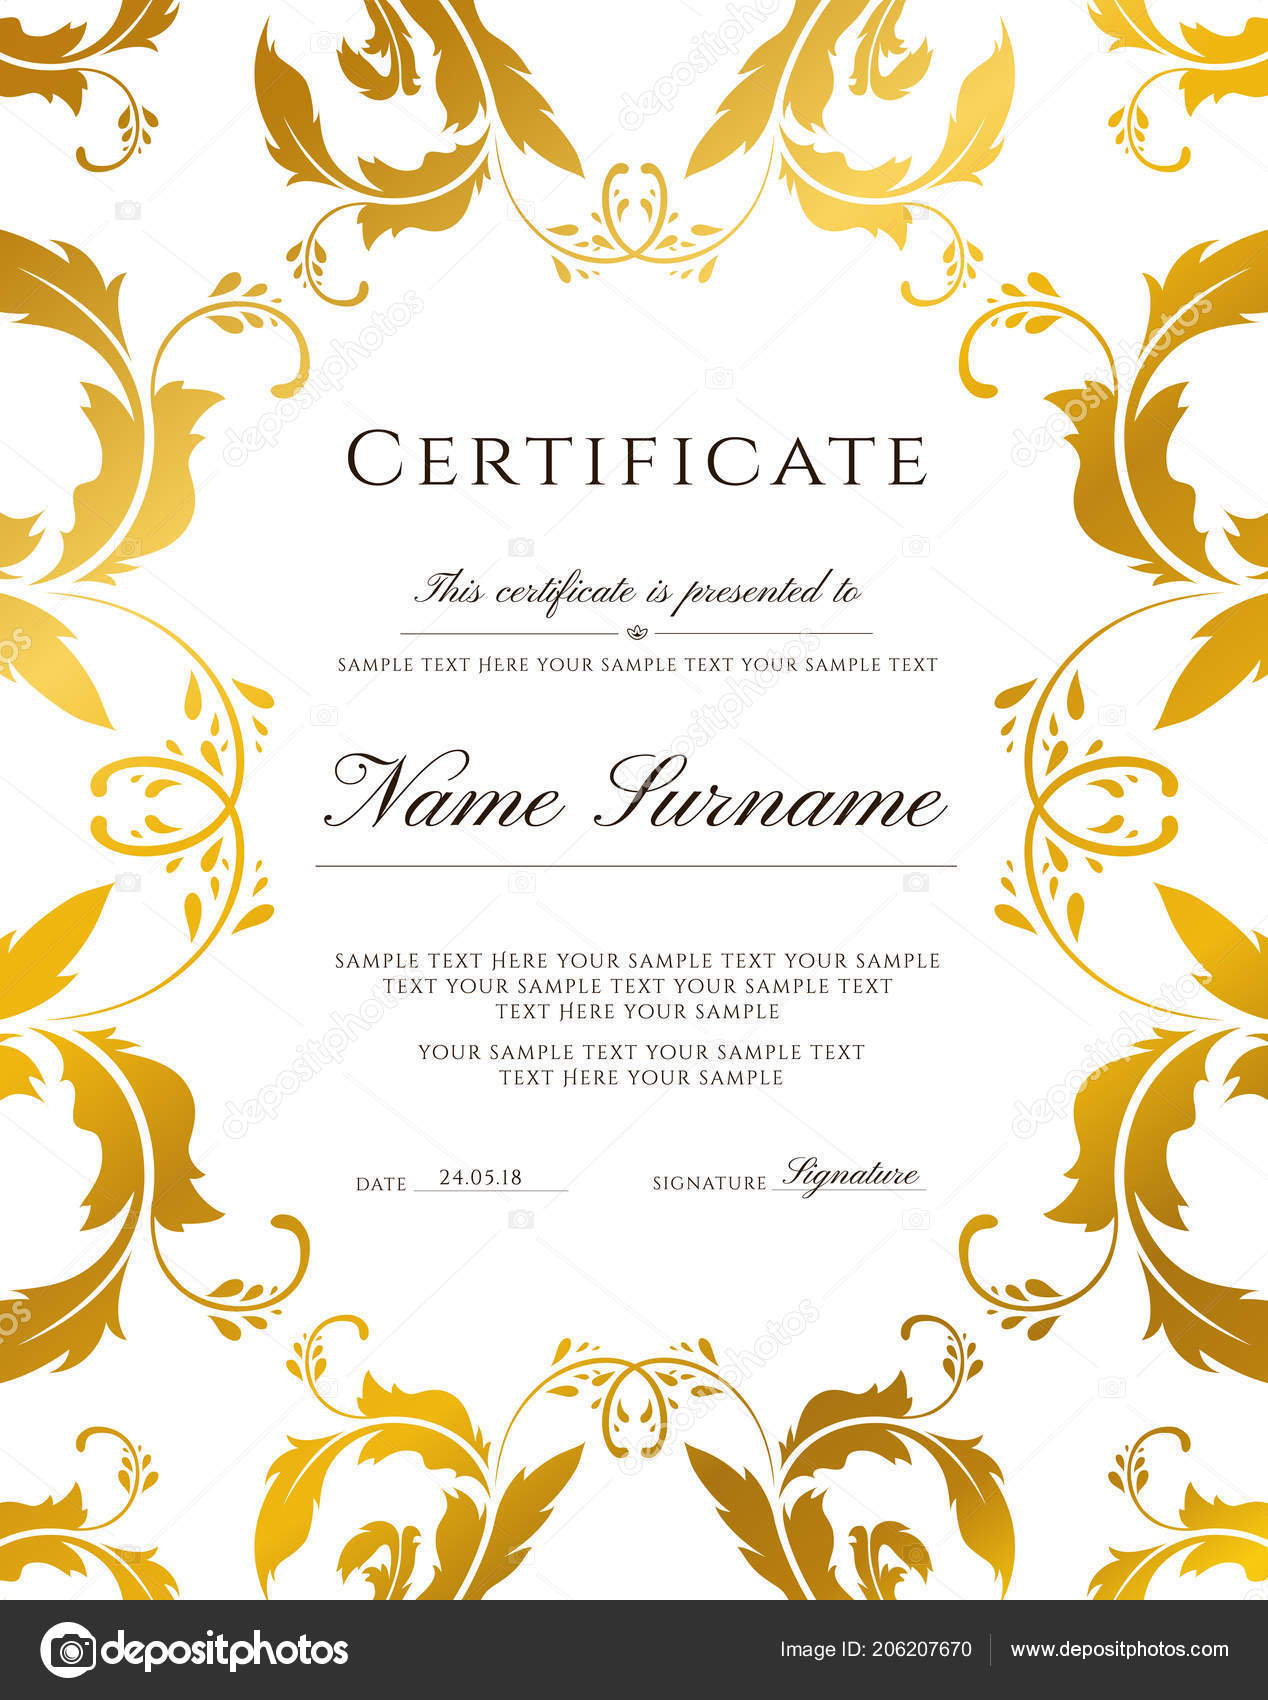 Certificate Template Gold Border Editable Design Diploma Certificate